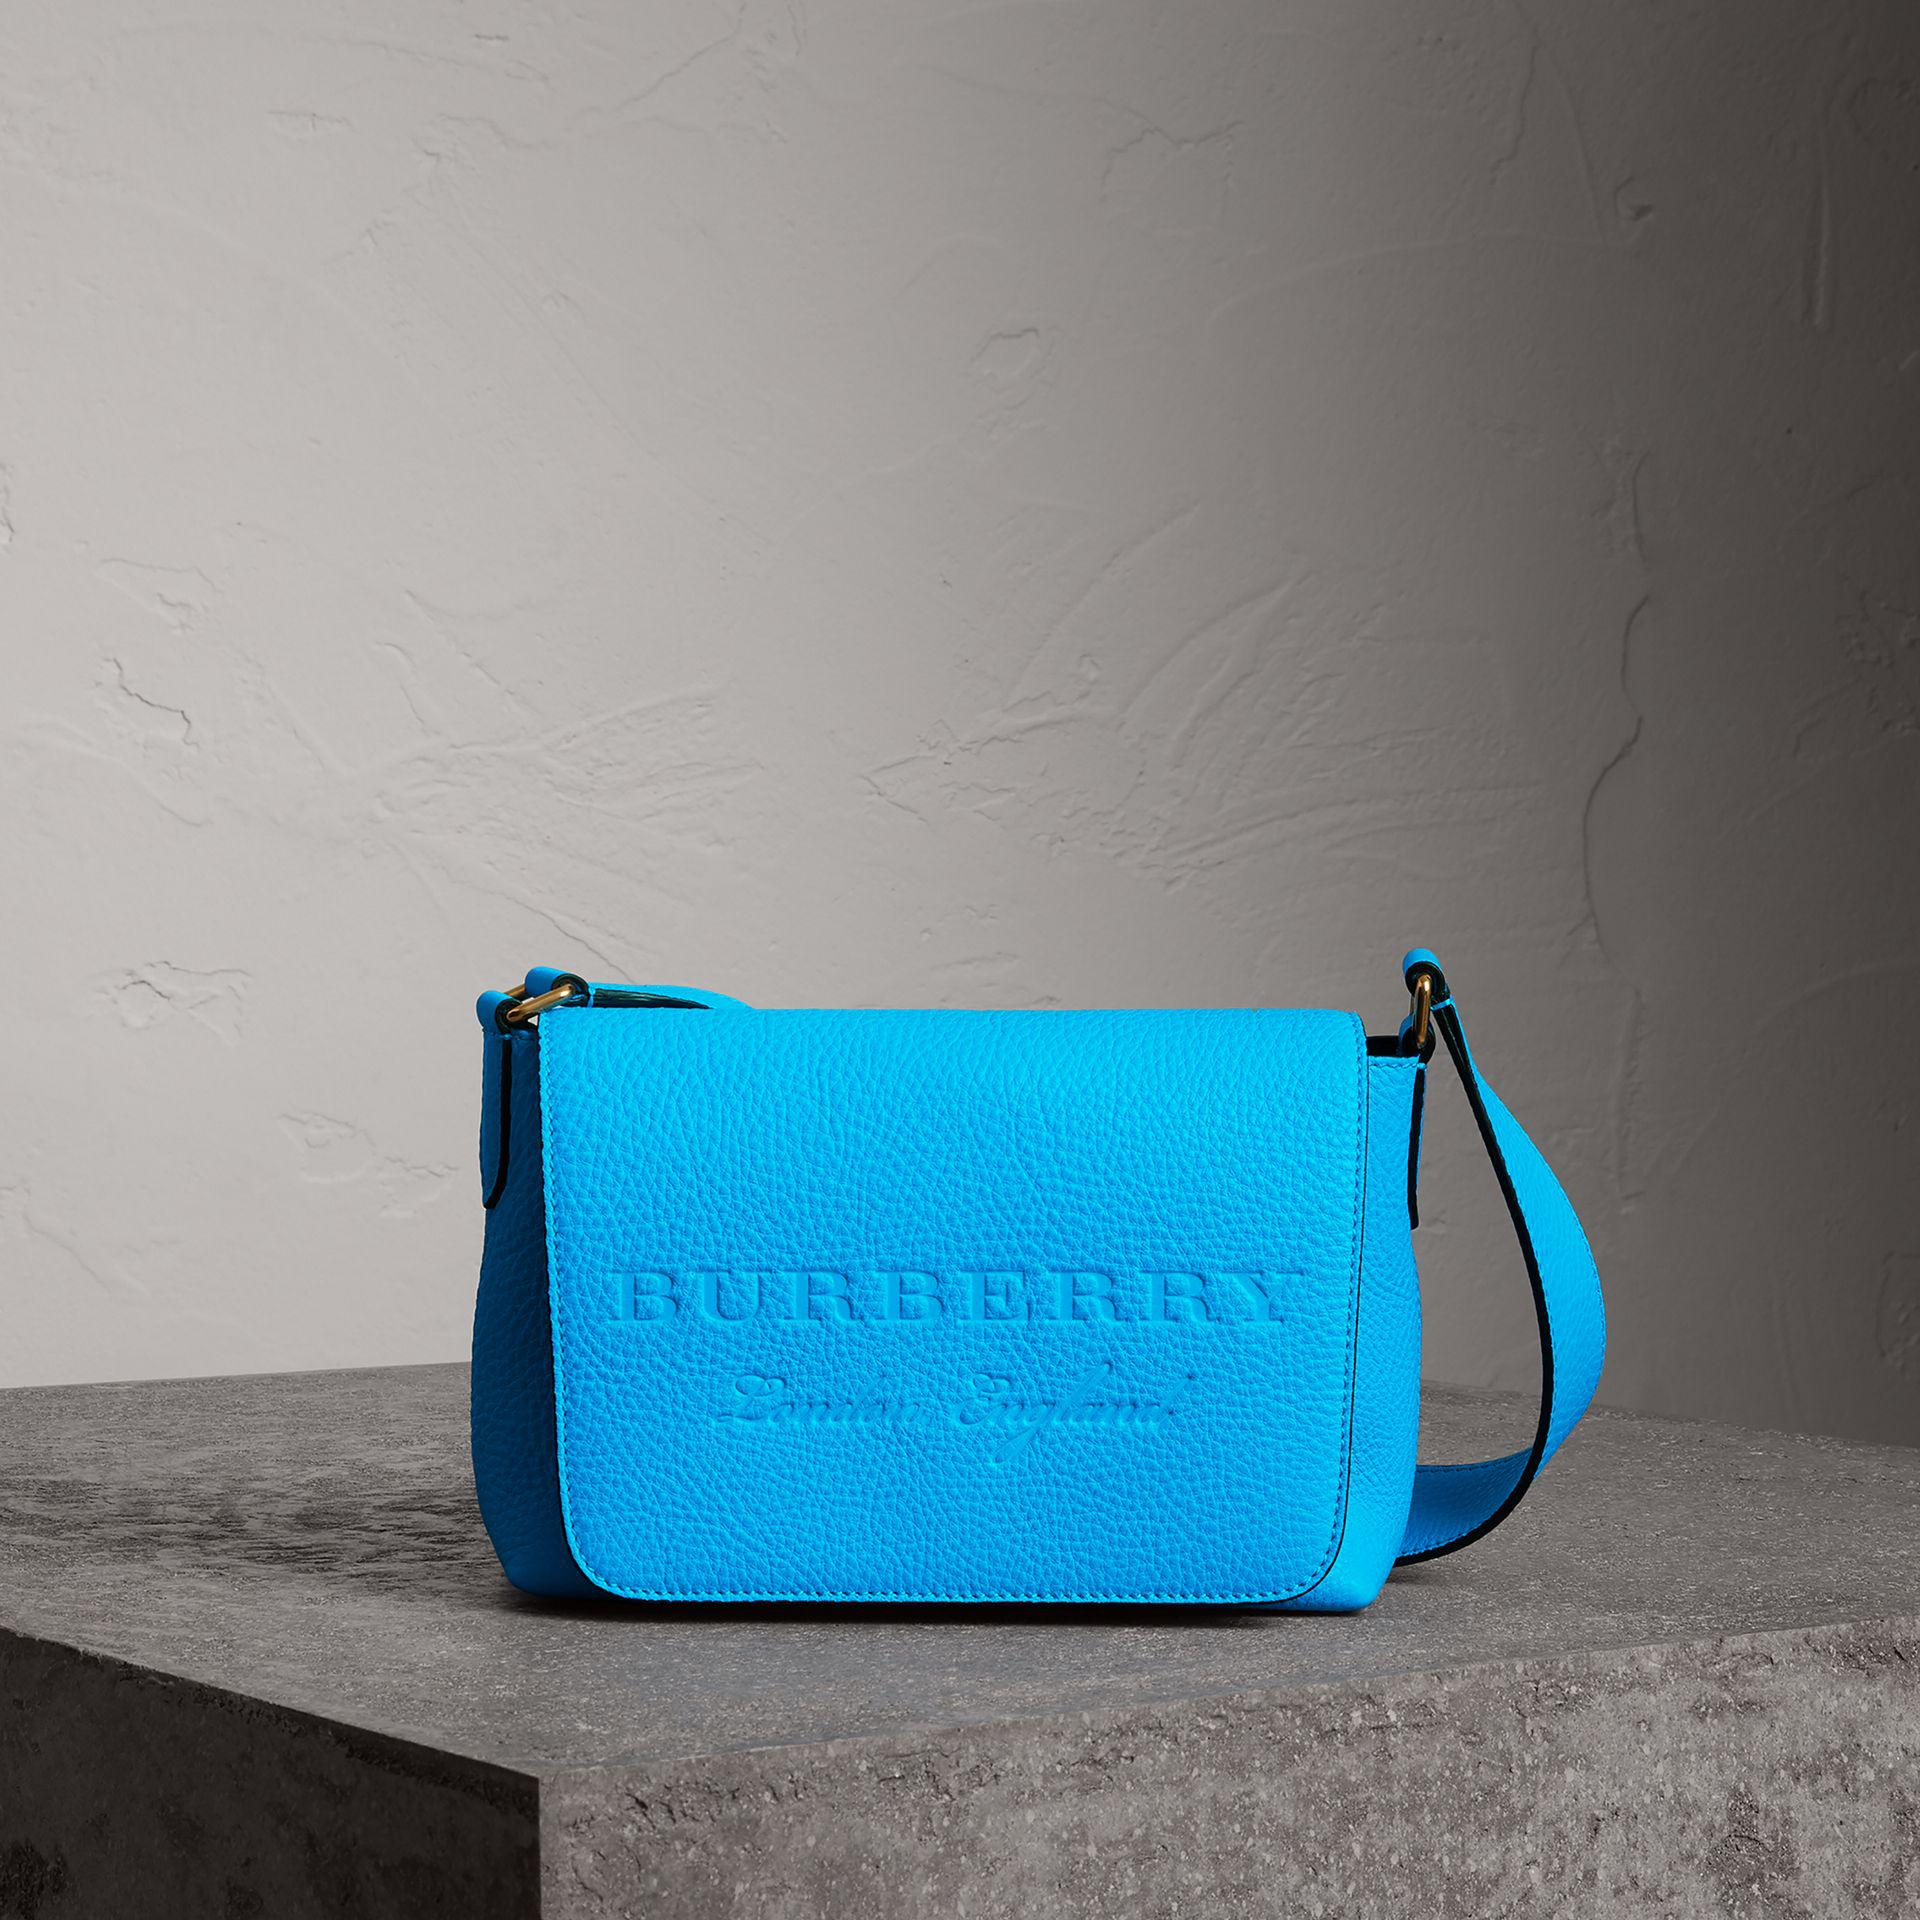 b2650eef4bbb Lyst - Burberry Small Embossed Neon Leather Messenger Bag in Blue